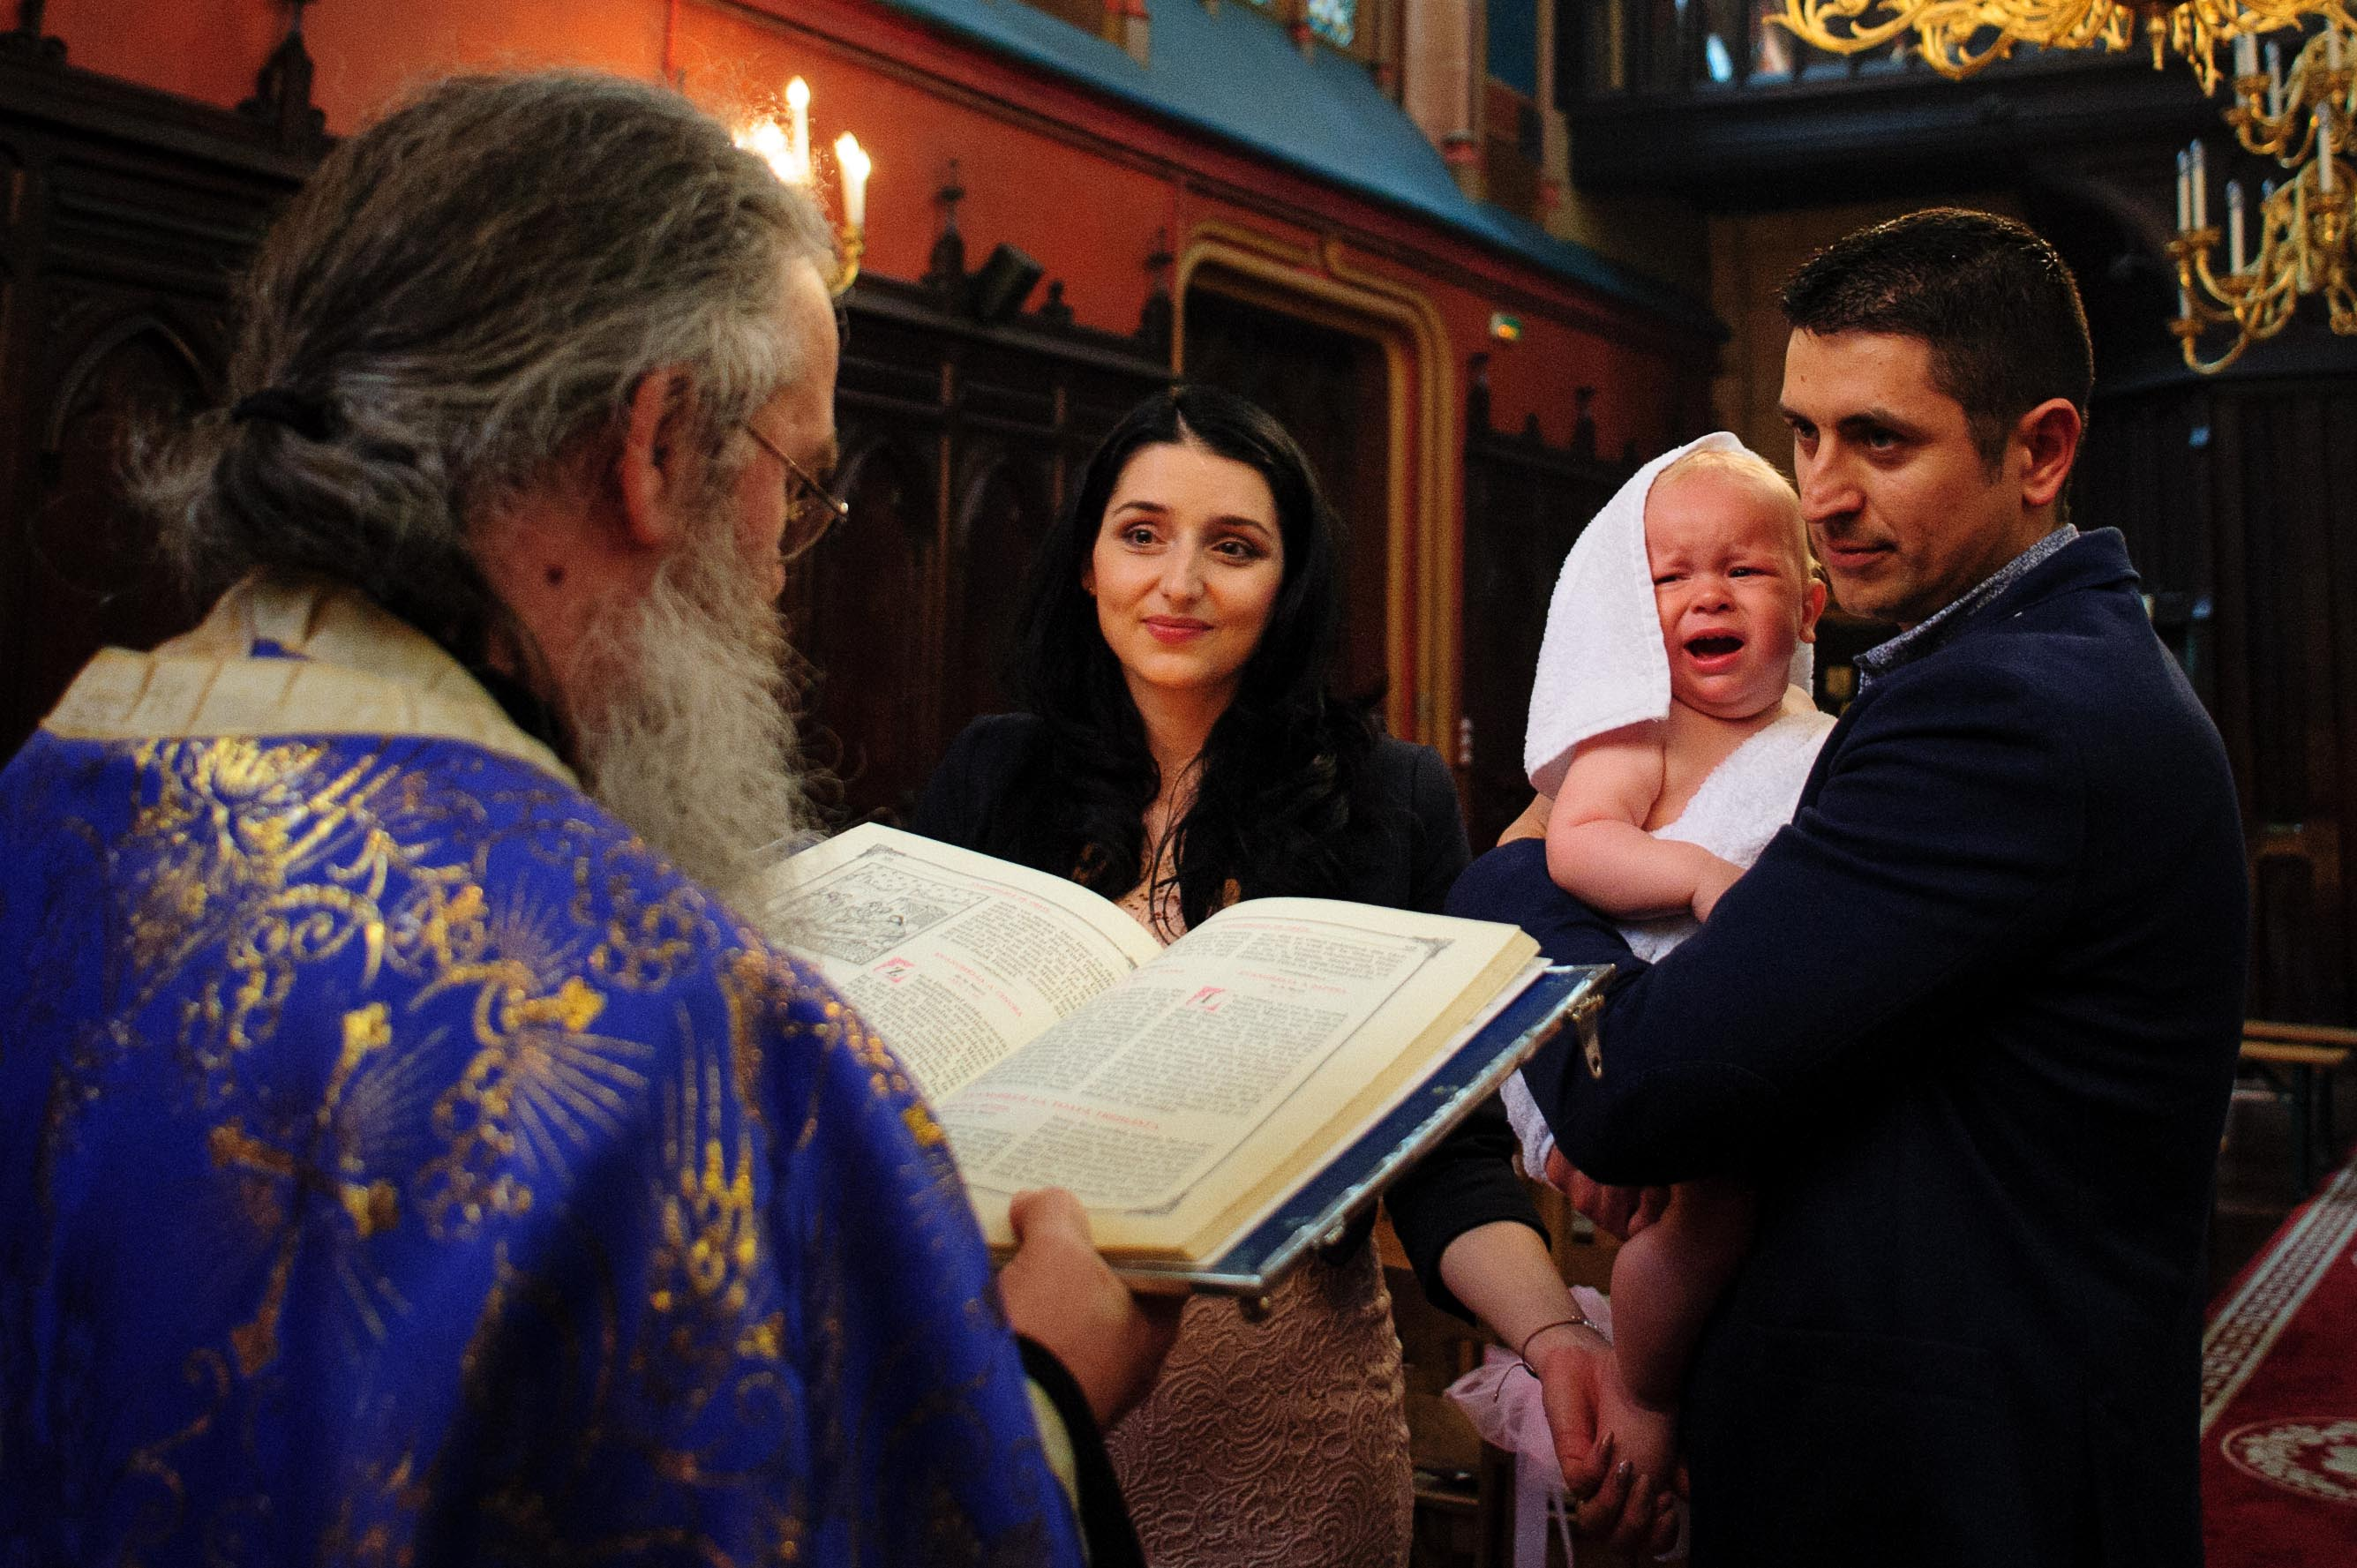 Photographe de Baptême à Paris - Orthodox baptism photographer in Paris - Christening